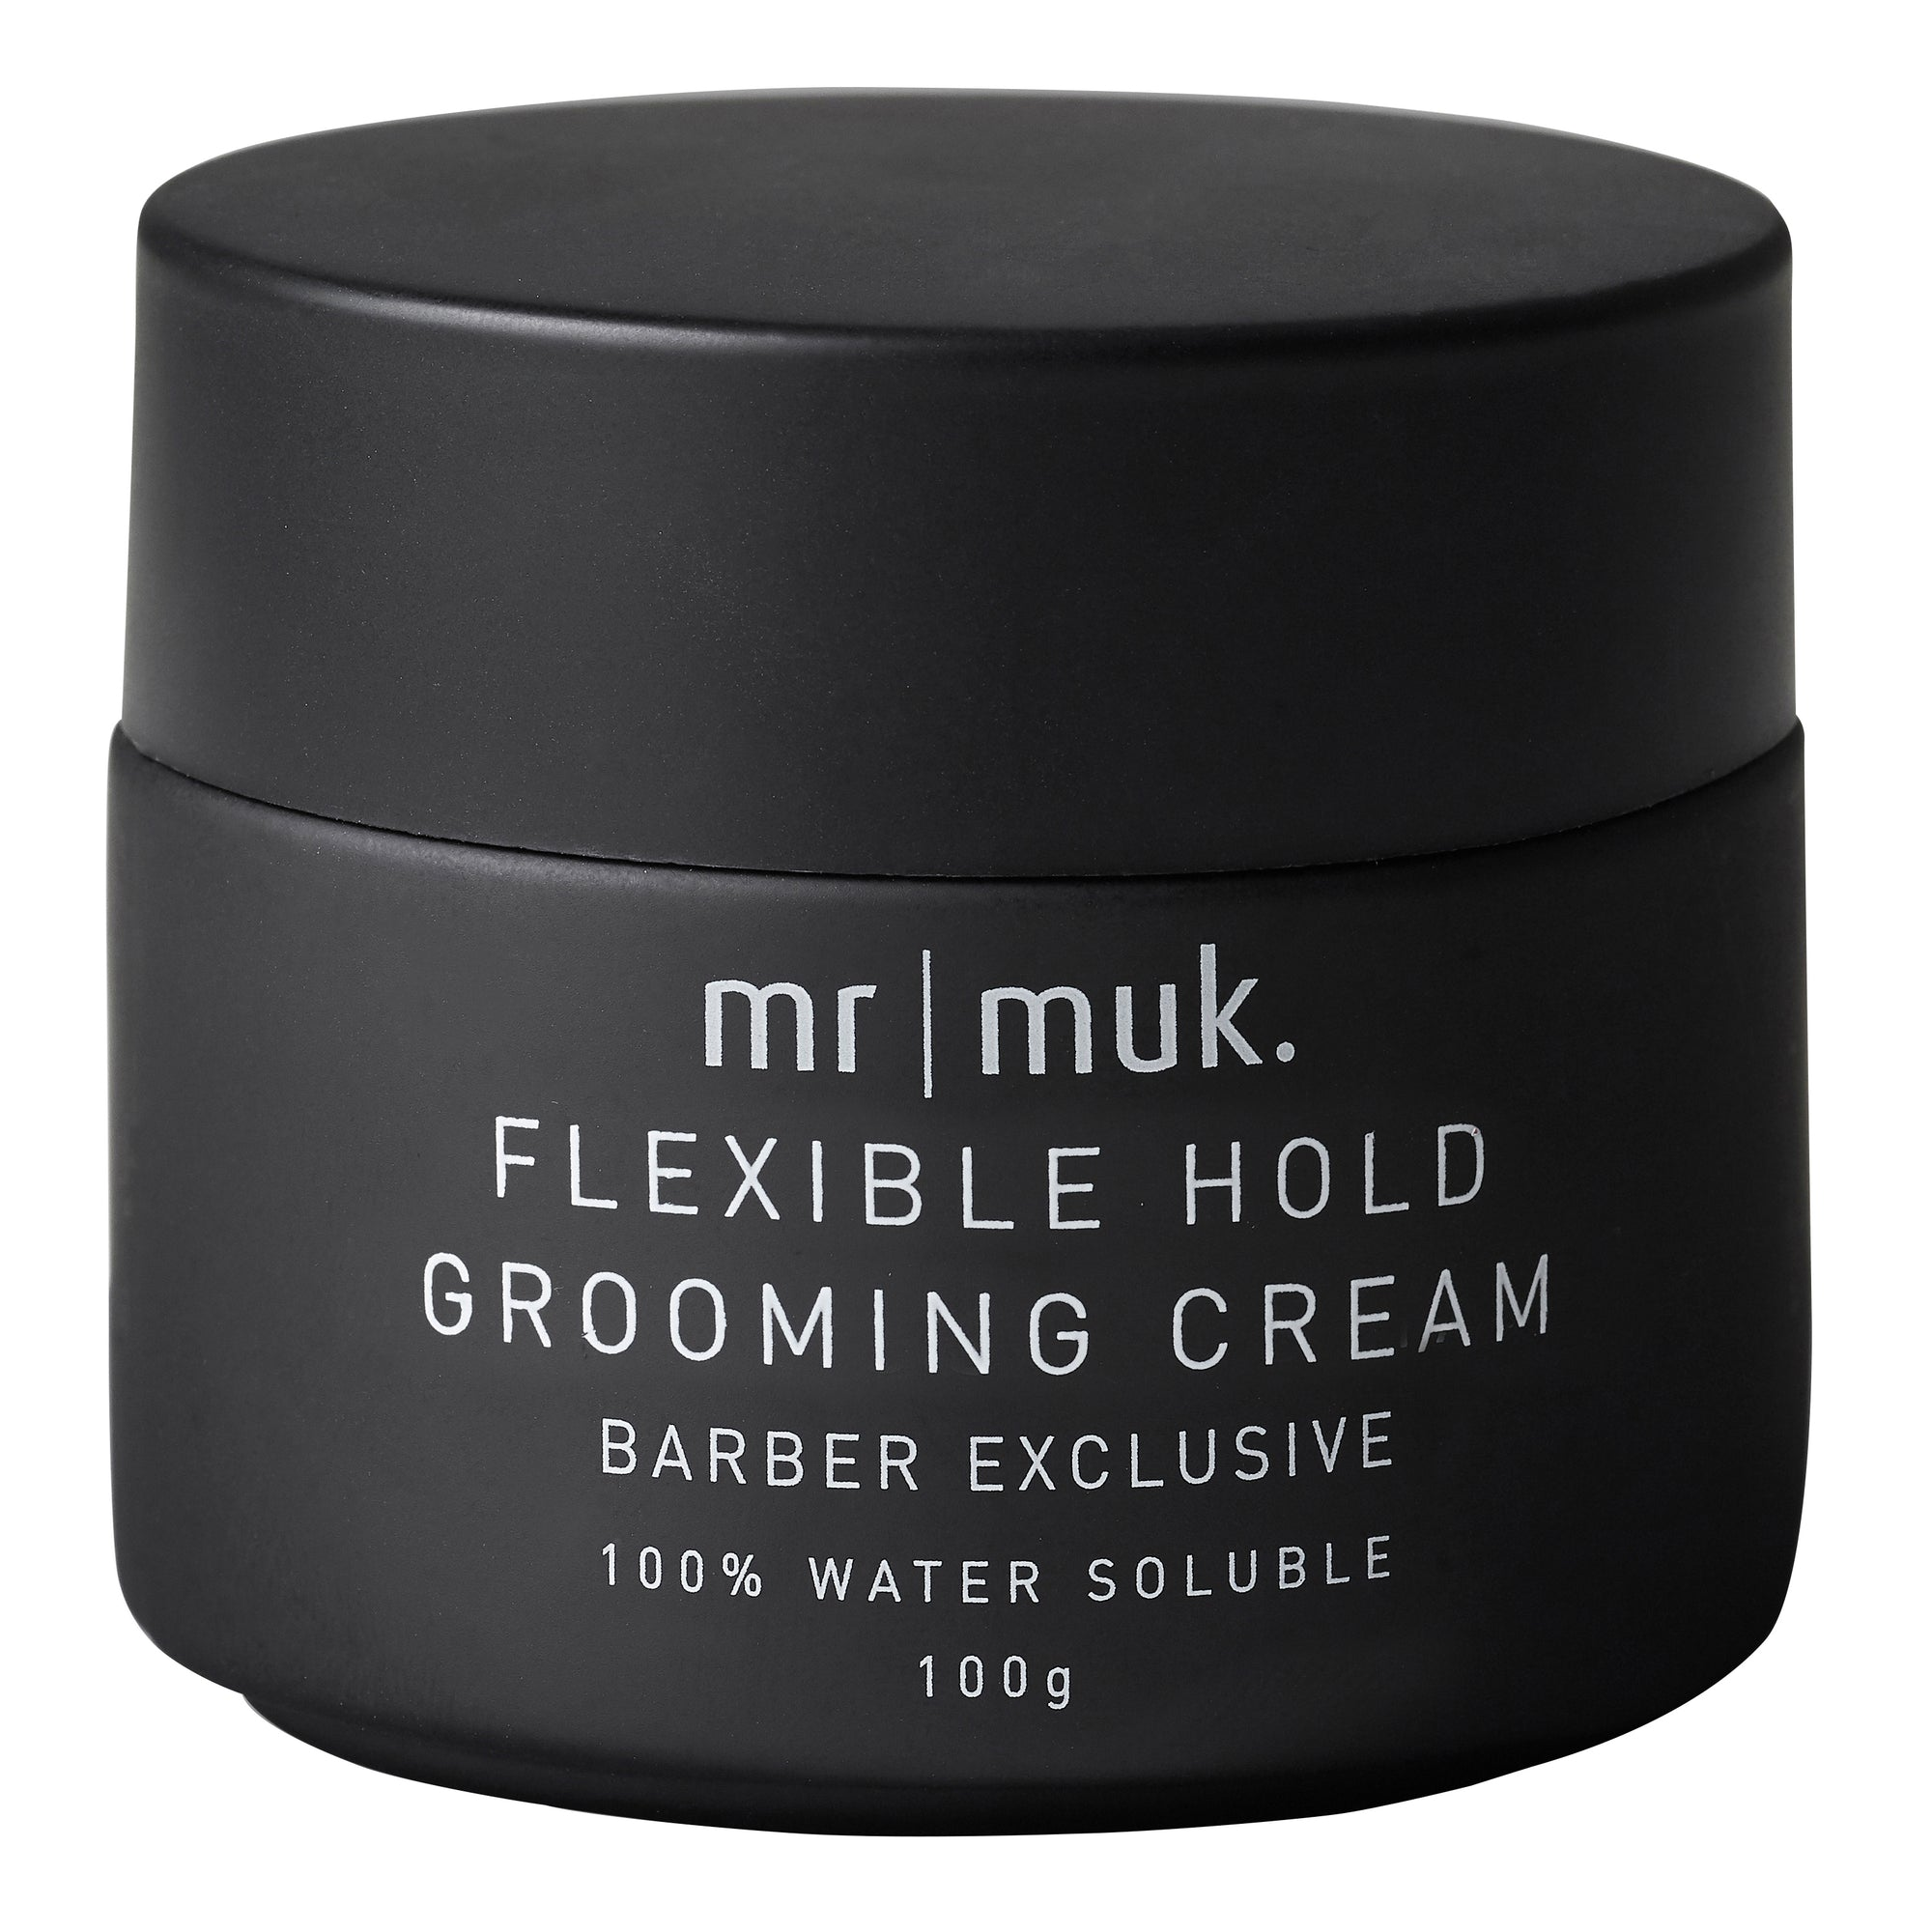 FLEXIBLE HOLD GROOMING CREAM